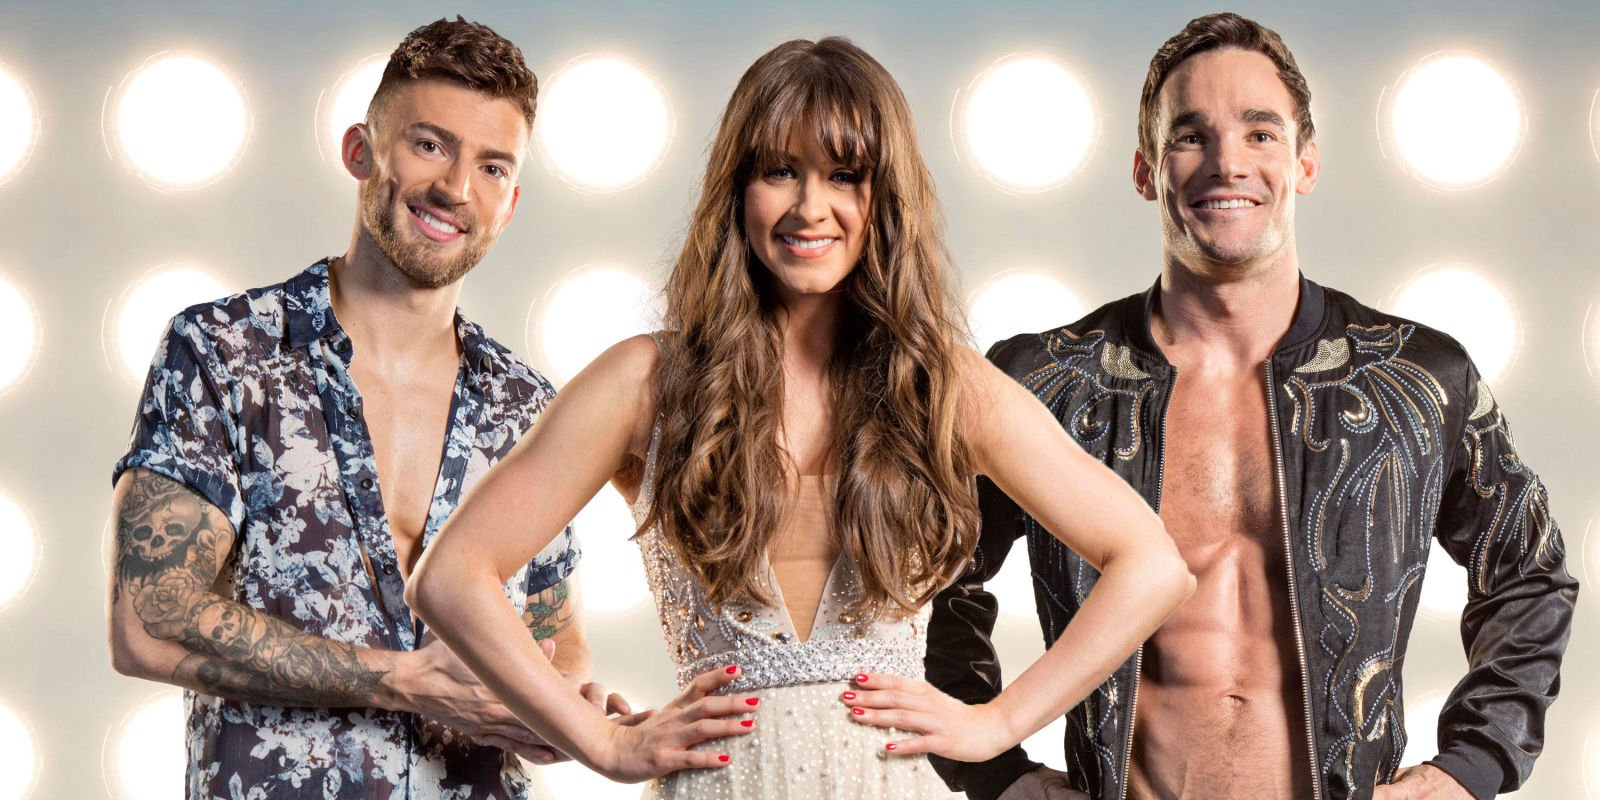 Coronation Street's Brooke Vincent doesn't actually think Dancing on Ice 2018 result was a fix